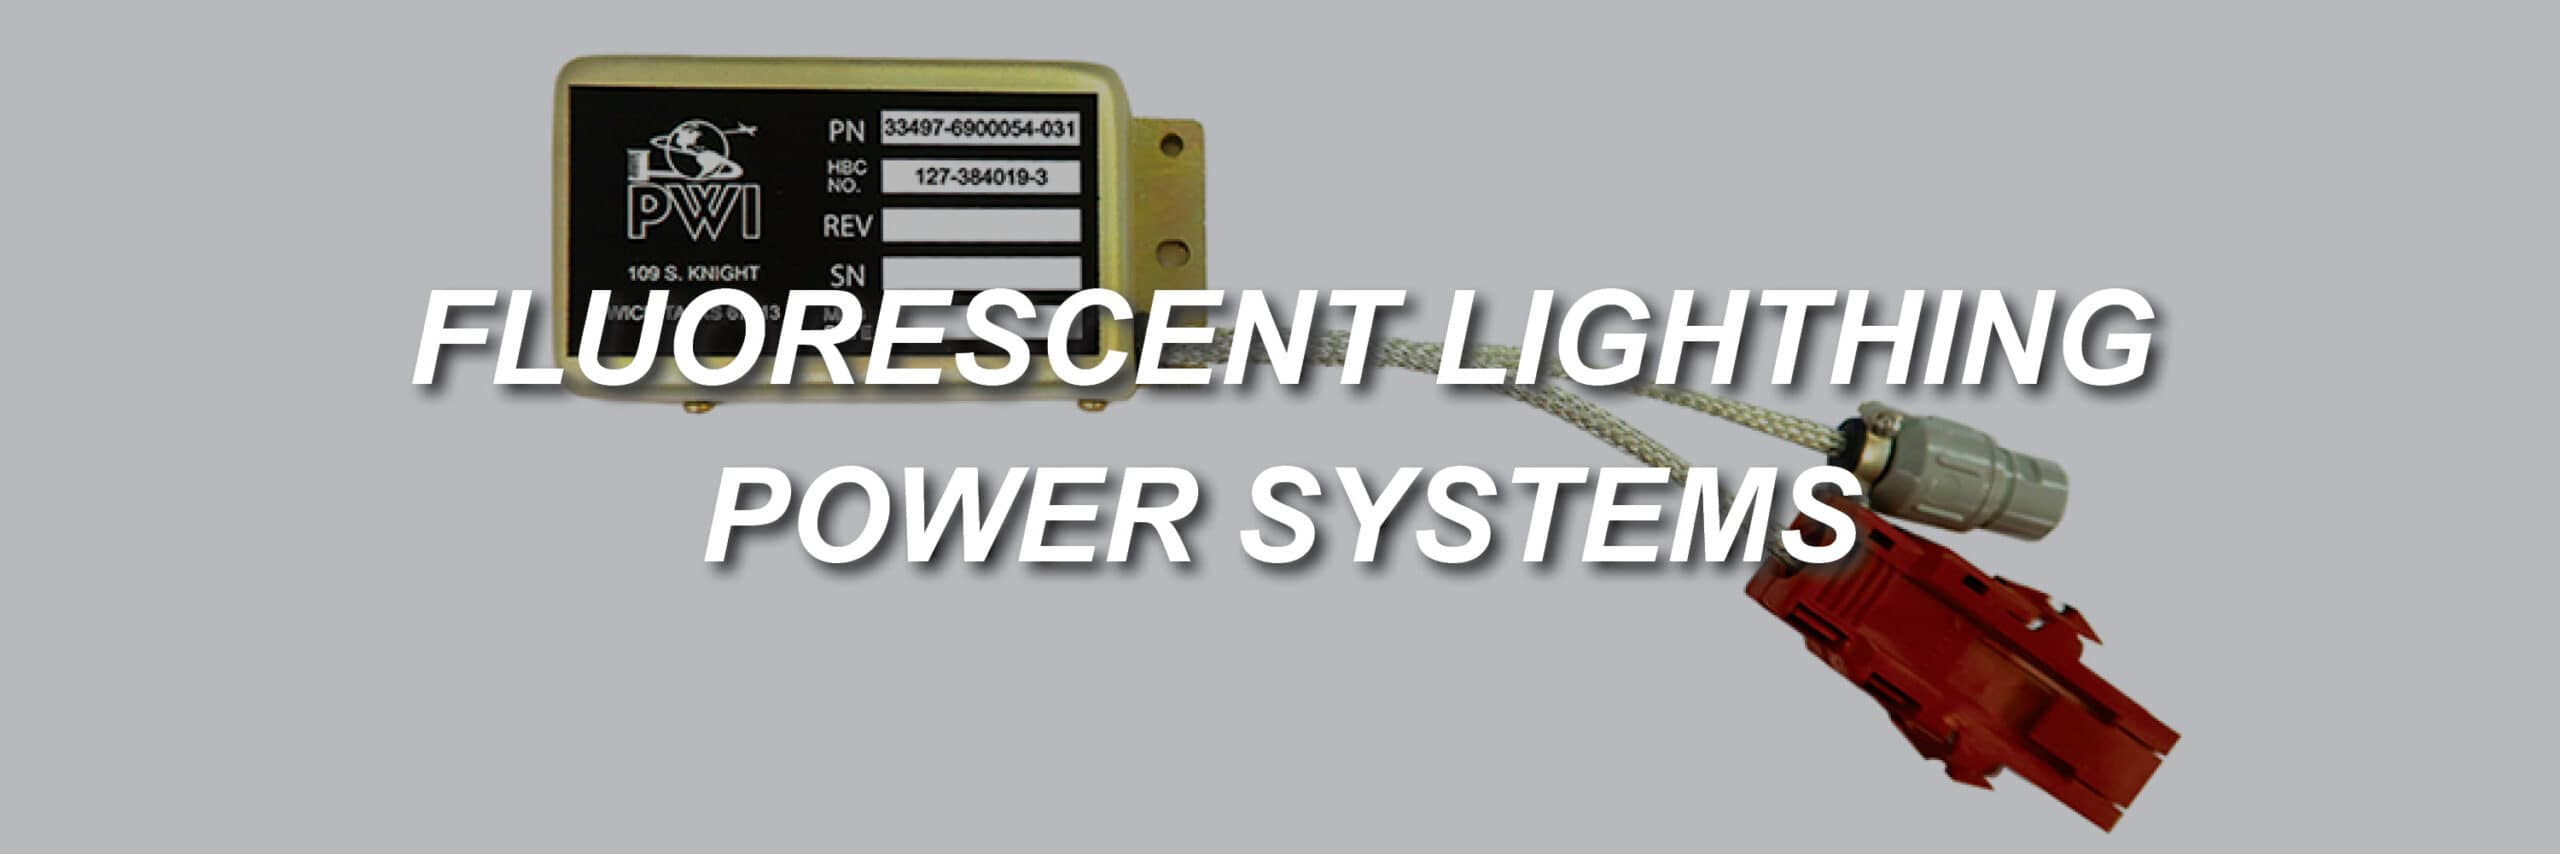 Fluorescent Power Systems HeaderPWI v03